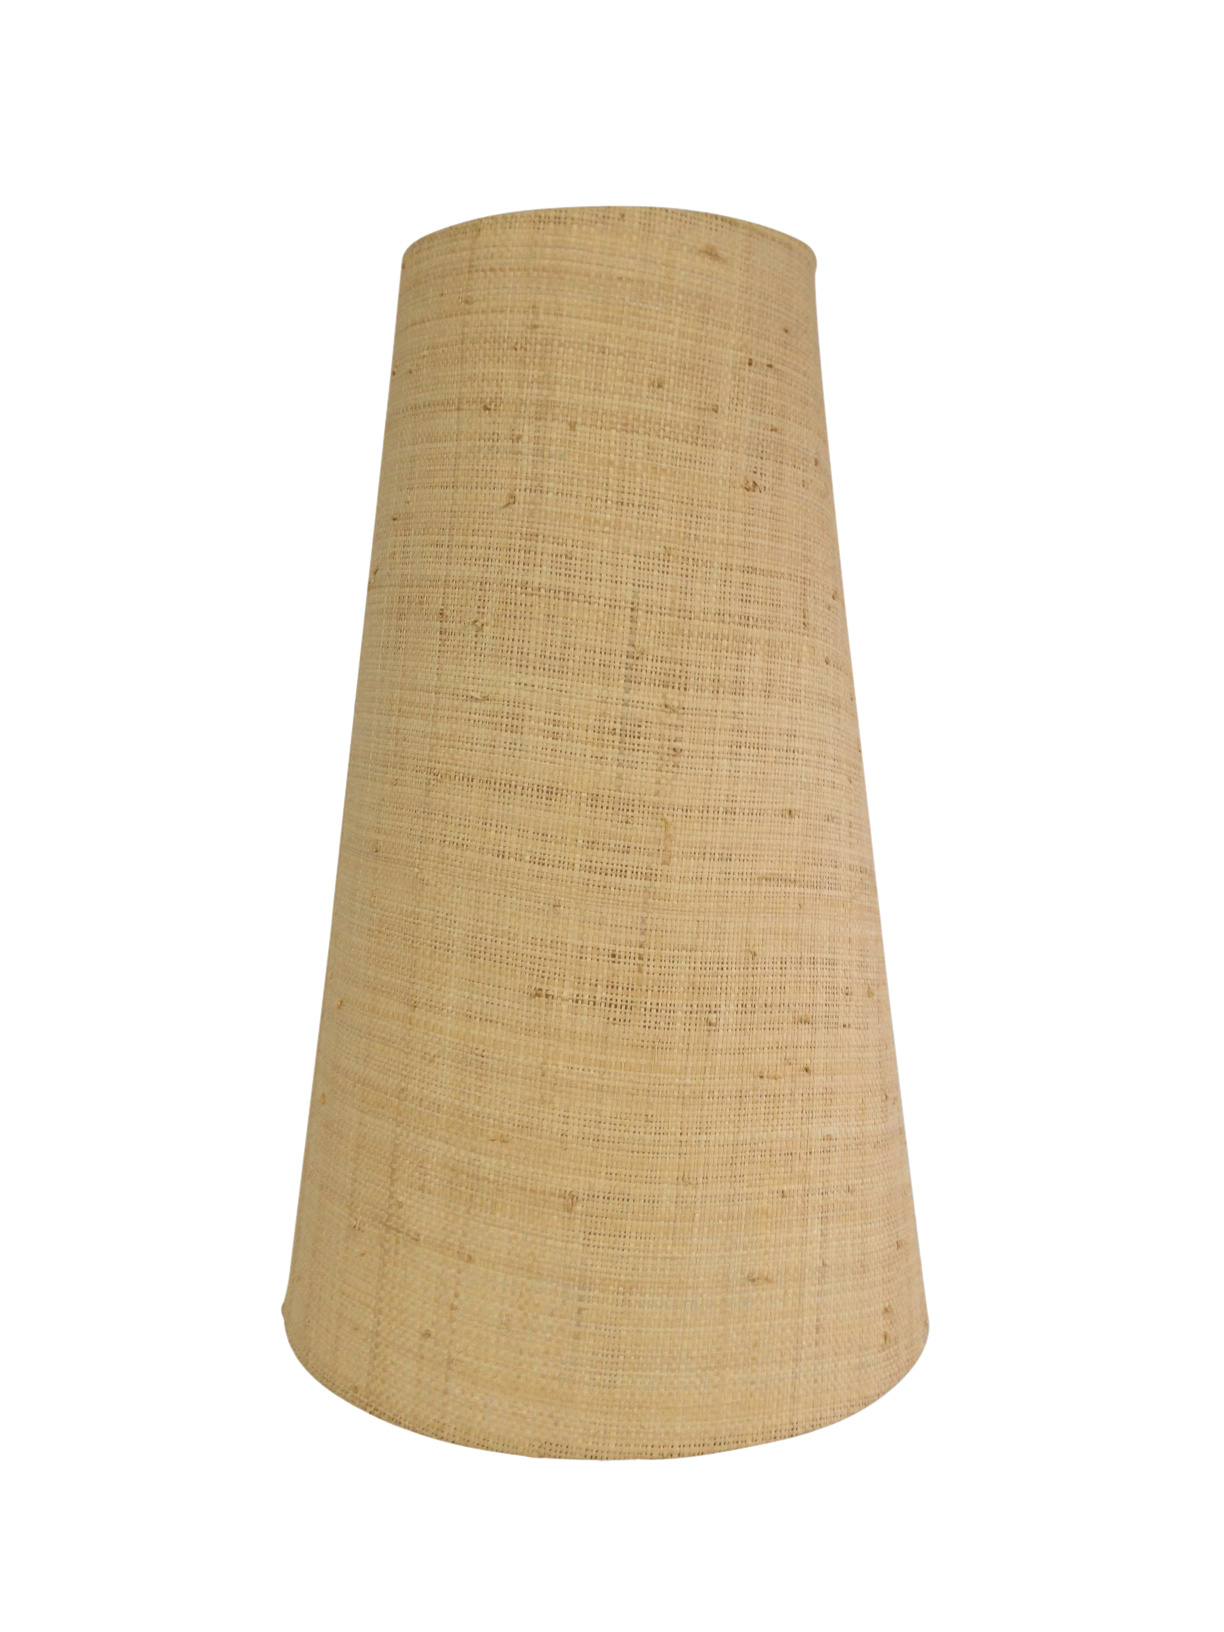 Raffia natural woven lampshade craft enterprises pty ltd raffia natural woven lampshade aloadofball Image collections